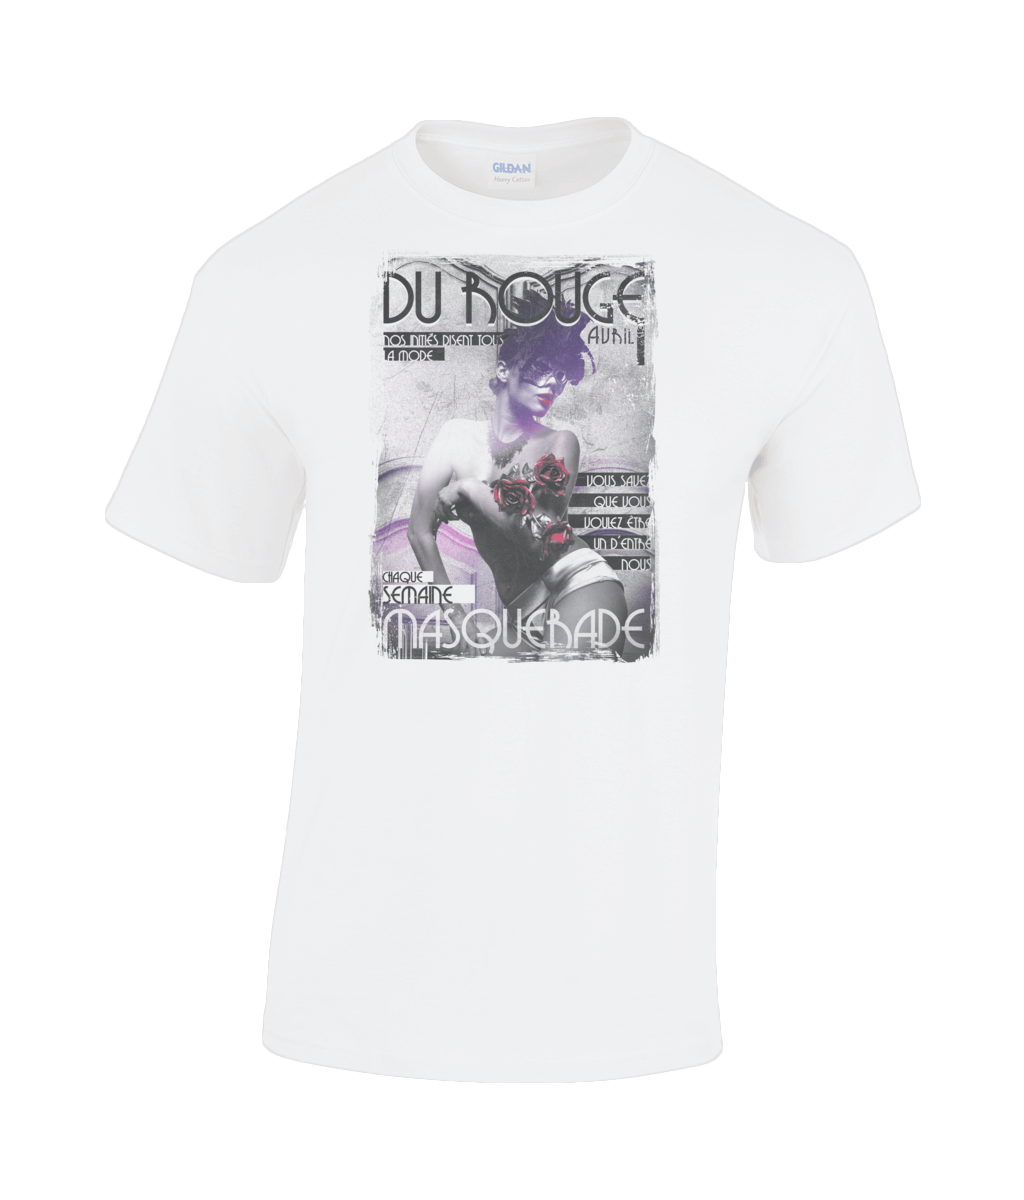 Purple masquerade t-shirt